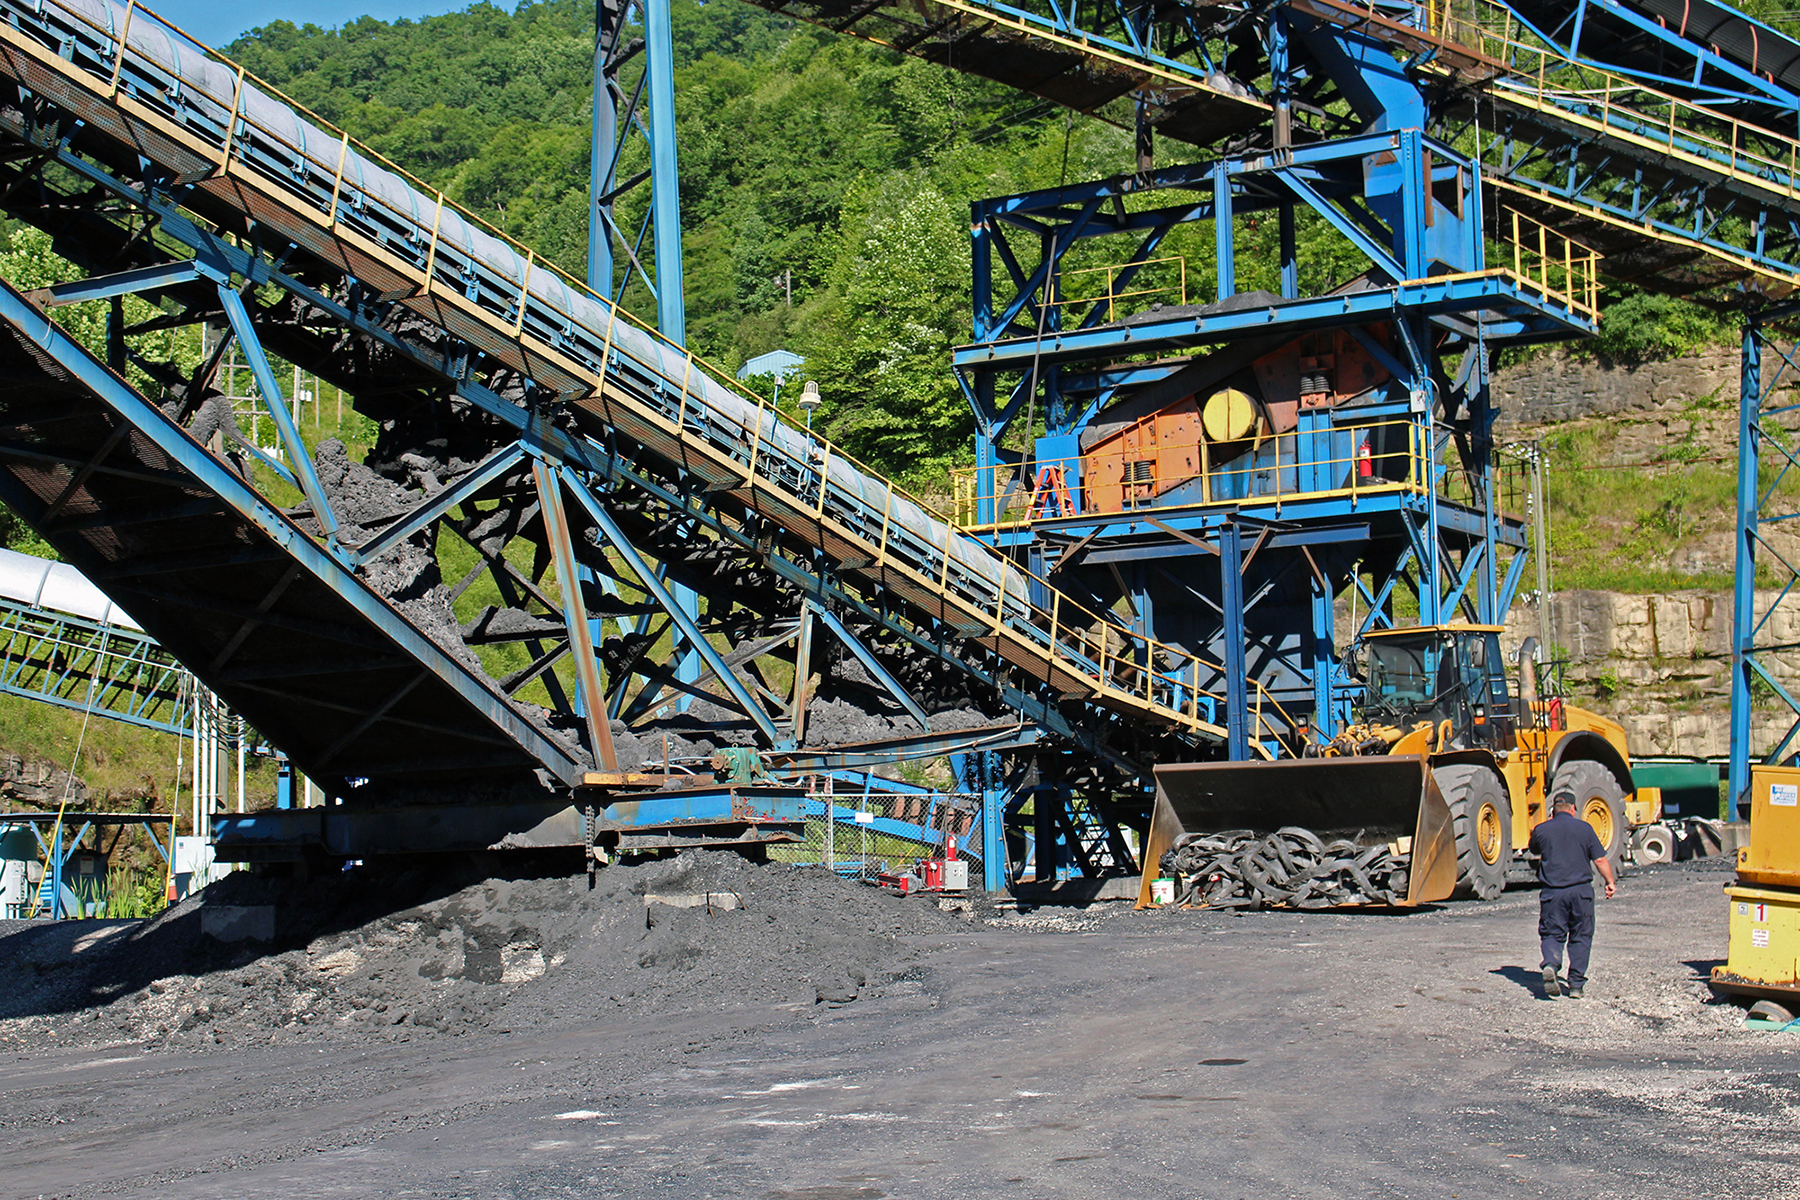 A security guard walks past coal mining equipment at Enterprise Mining Co. in Redfox, Kentucky. The mine went idle in July because of a lack of sales. (Emily Mills/News21)